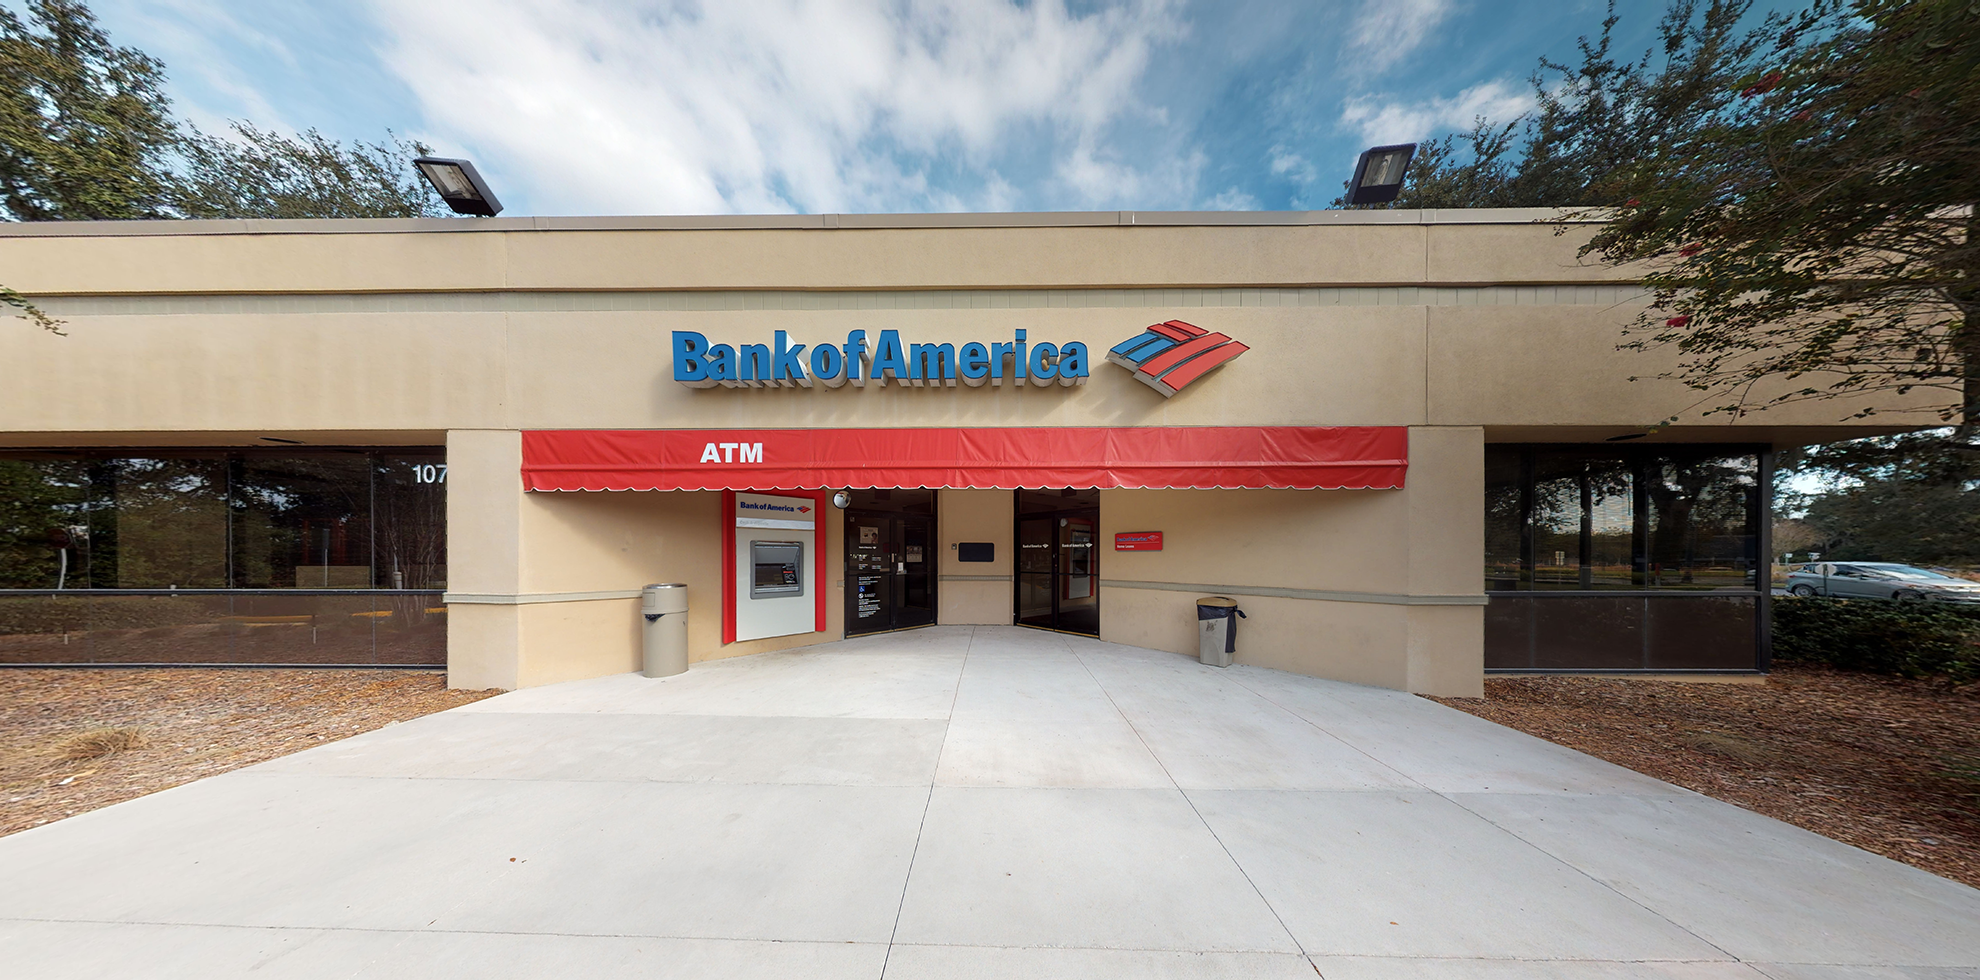 Bank of America financial center with walk-up ATM | 10715 US Highway 441, Leesburg, FL 34788